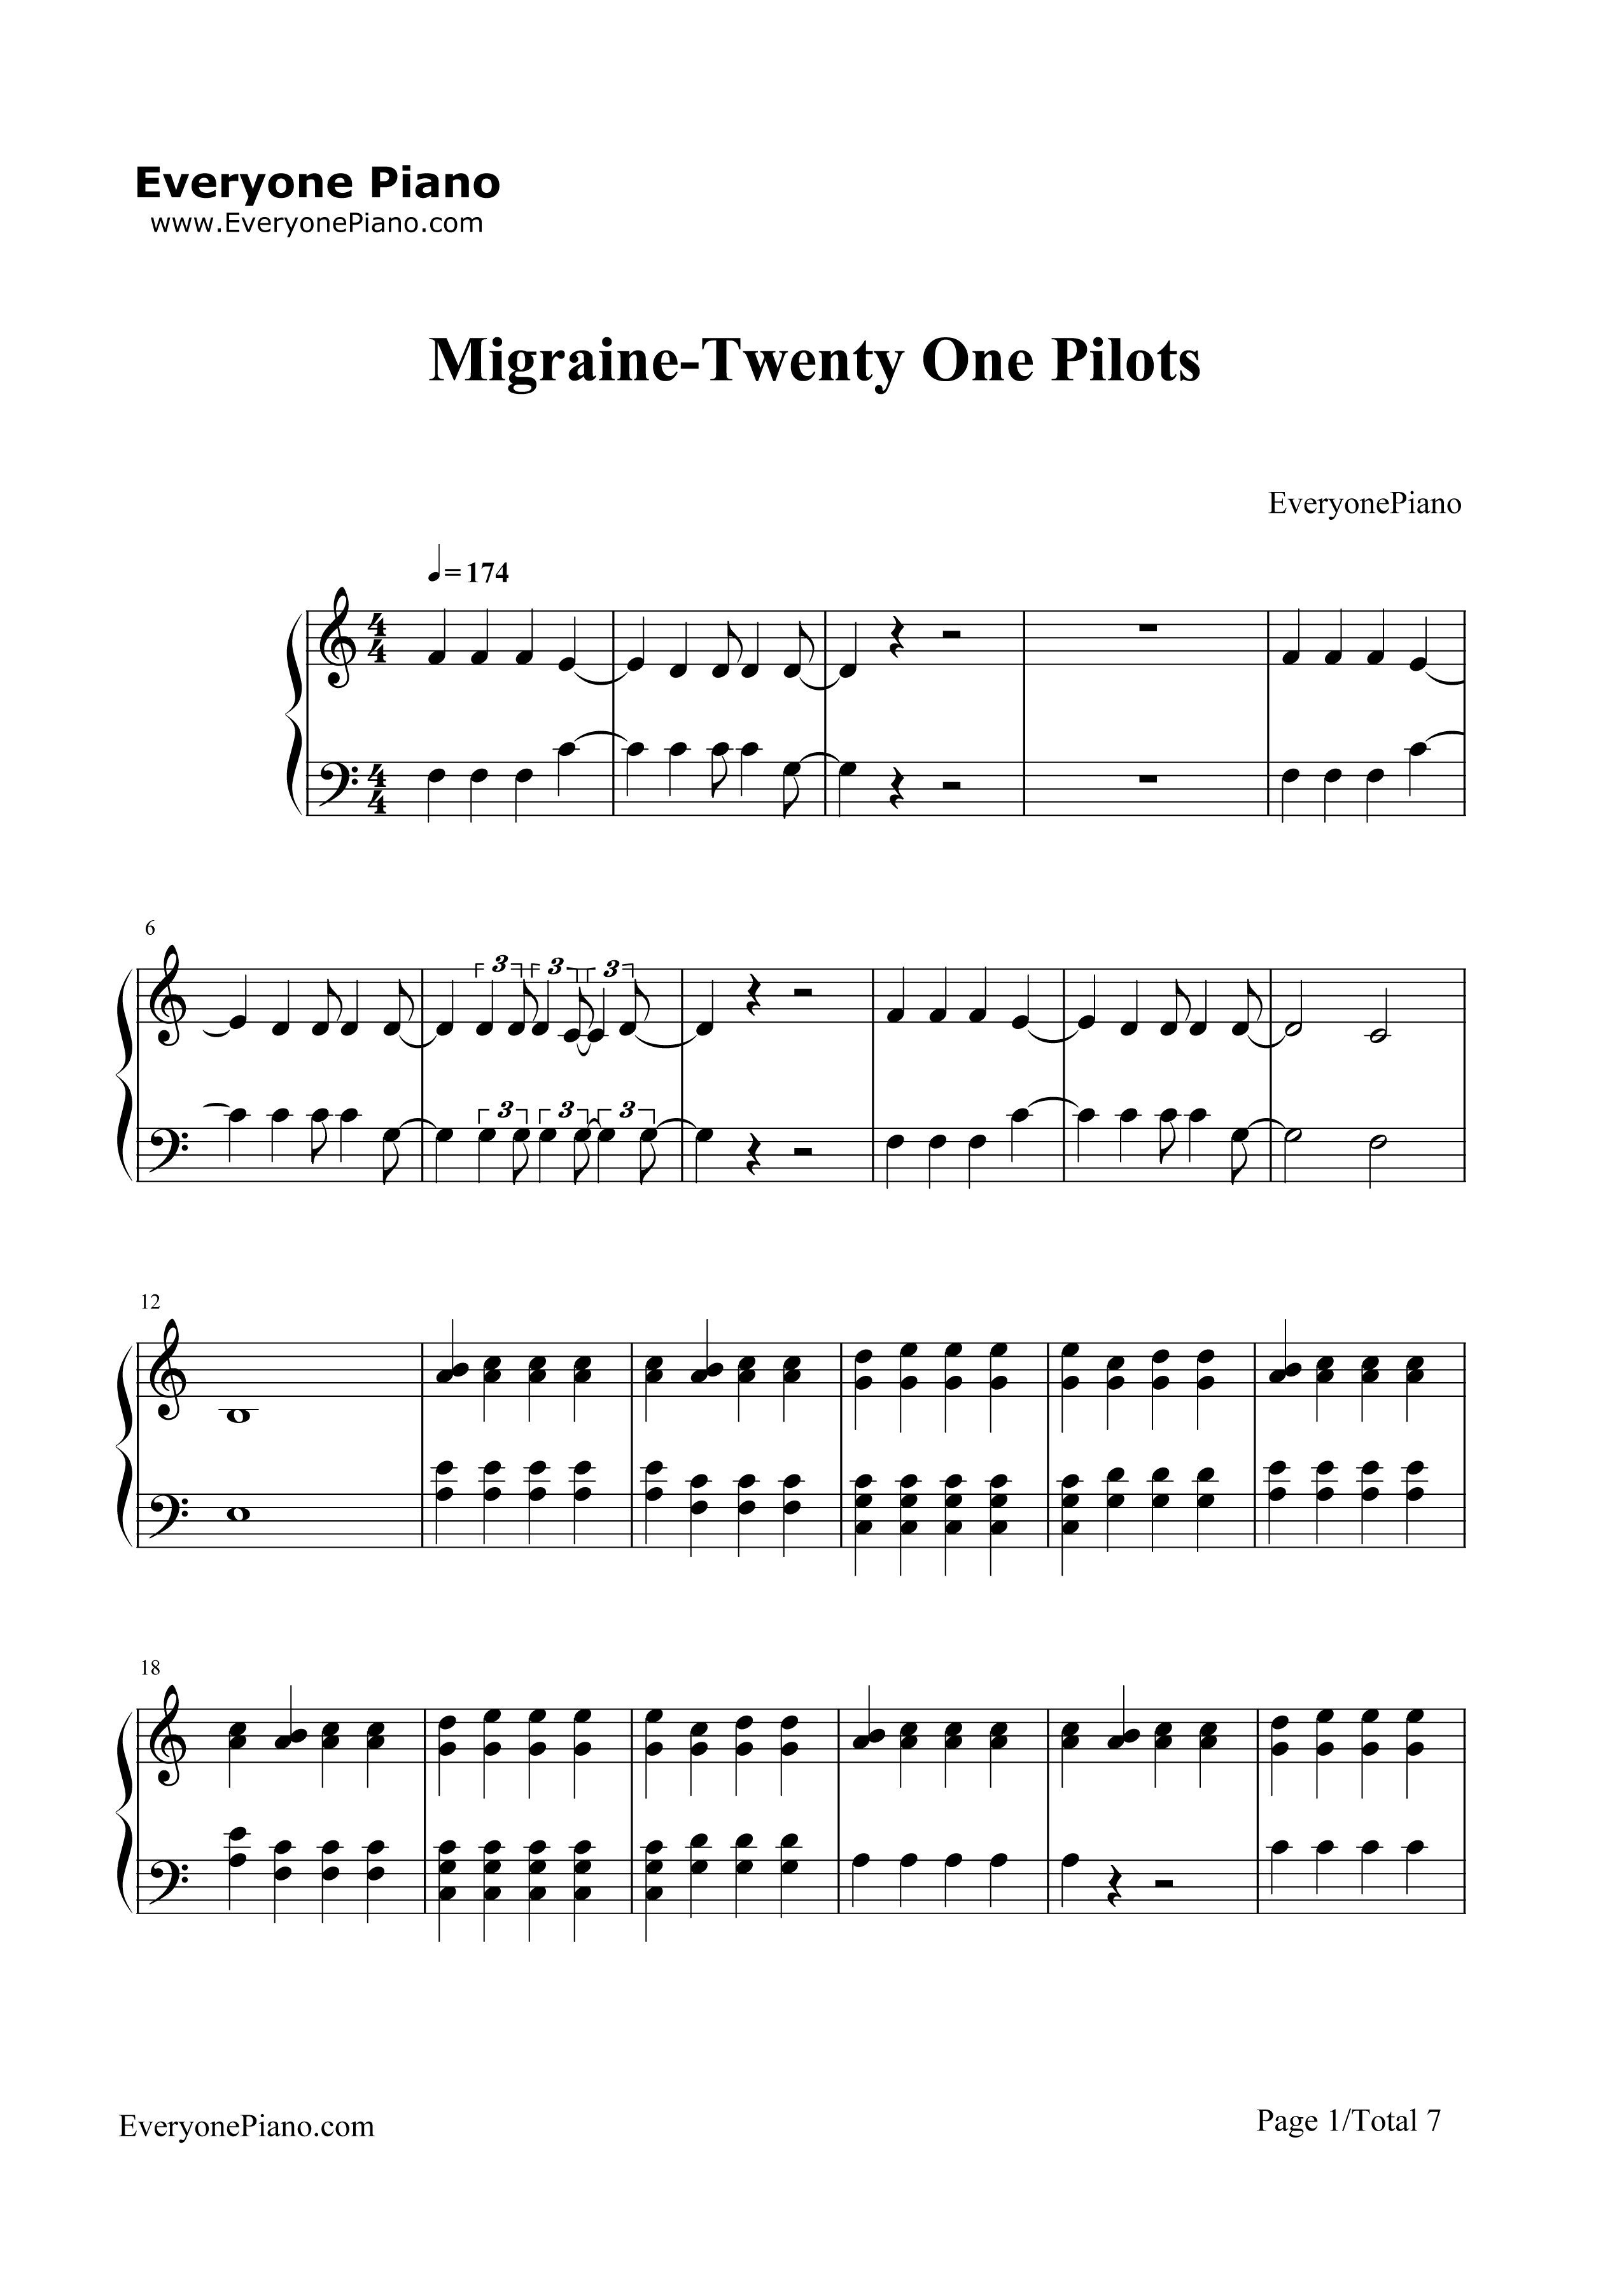 Migraine twenty one pilots stave preview 1 free piano sheet music listen now print sheet migraine twenty one pilots stave preview 1 hexwebz Images